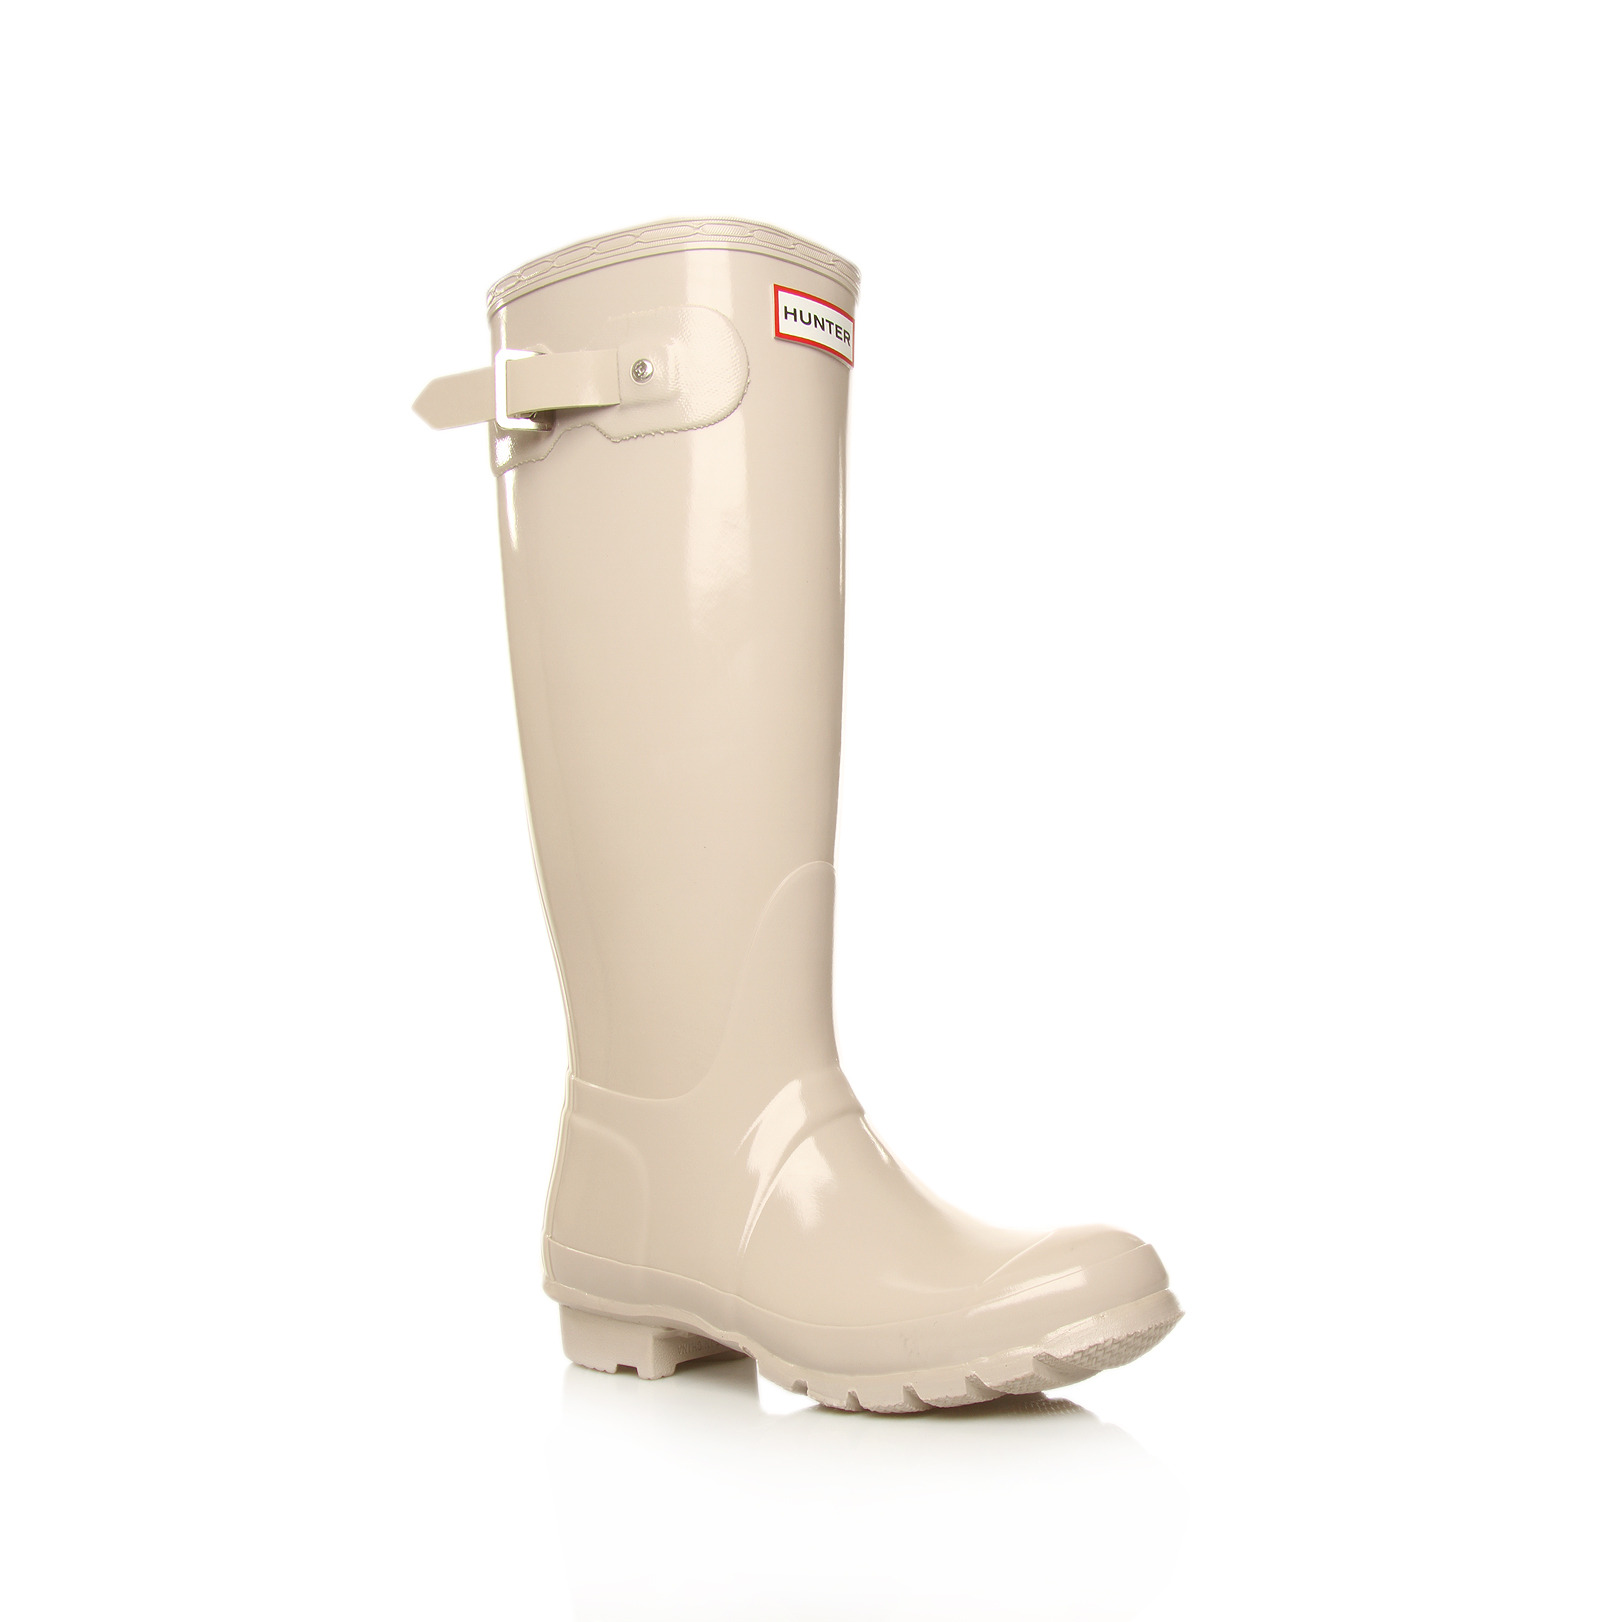 Original Tall Gloss - predominant colour: ivory; material: plastic/rubber; heel height: flat; embellishment: buckles; heel: standard; toe: round toe; boot length: mid calf; style: wellies